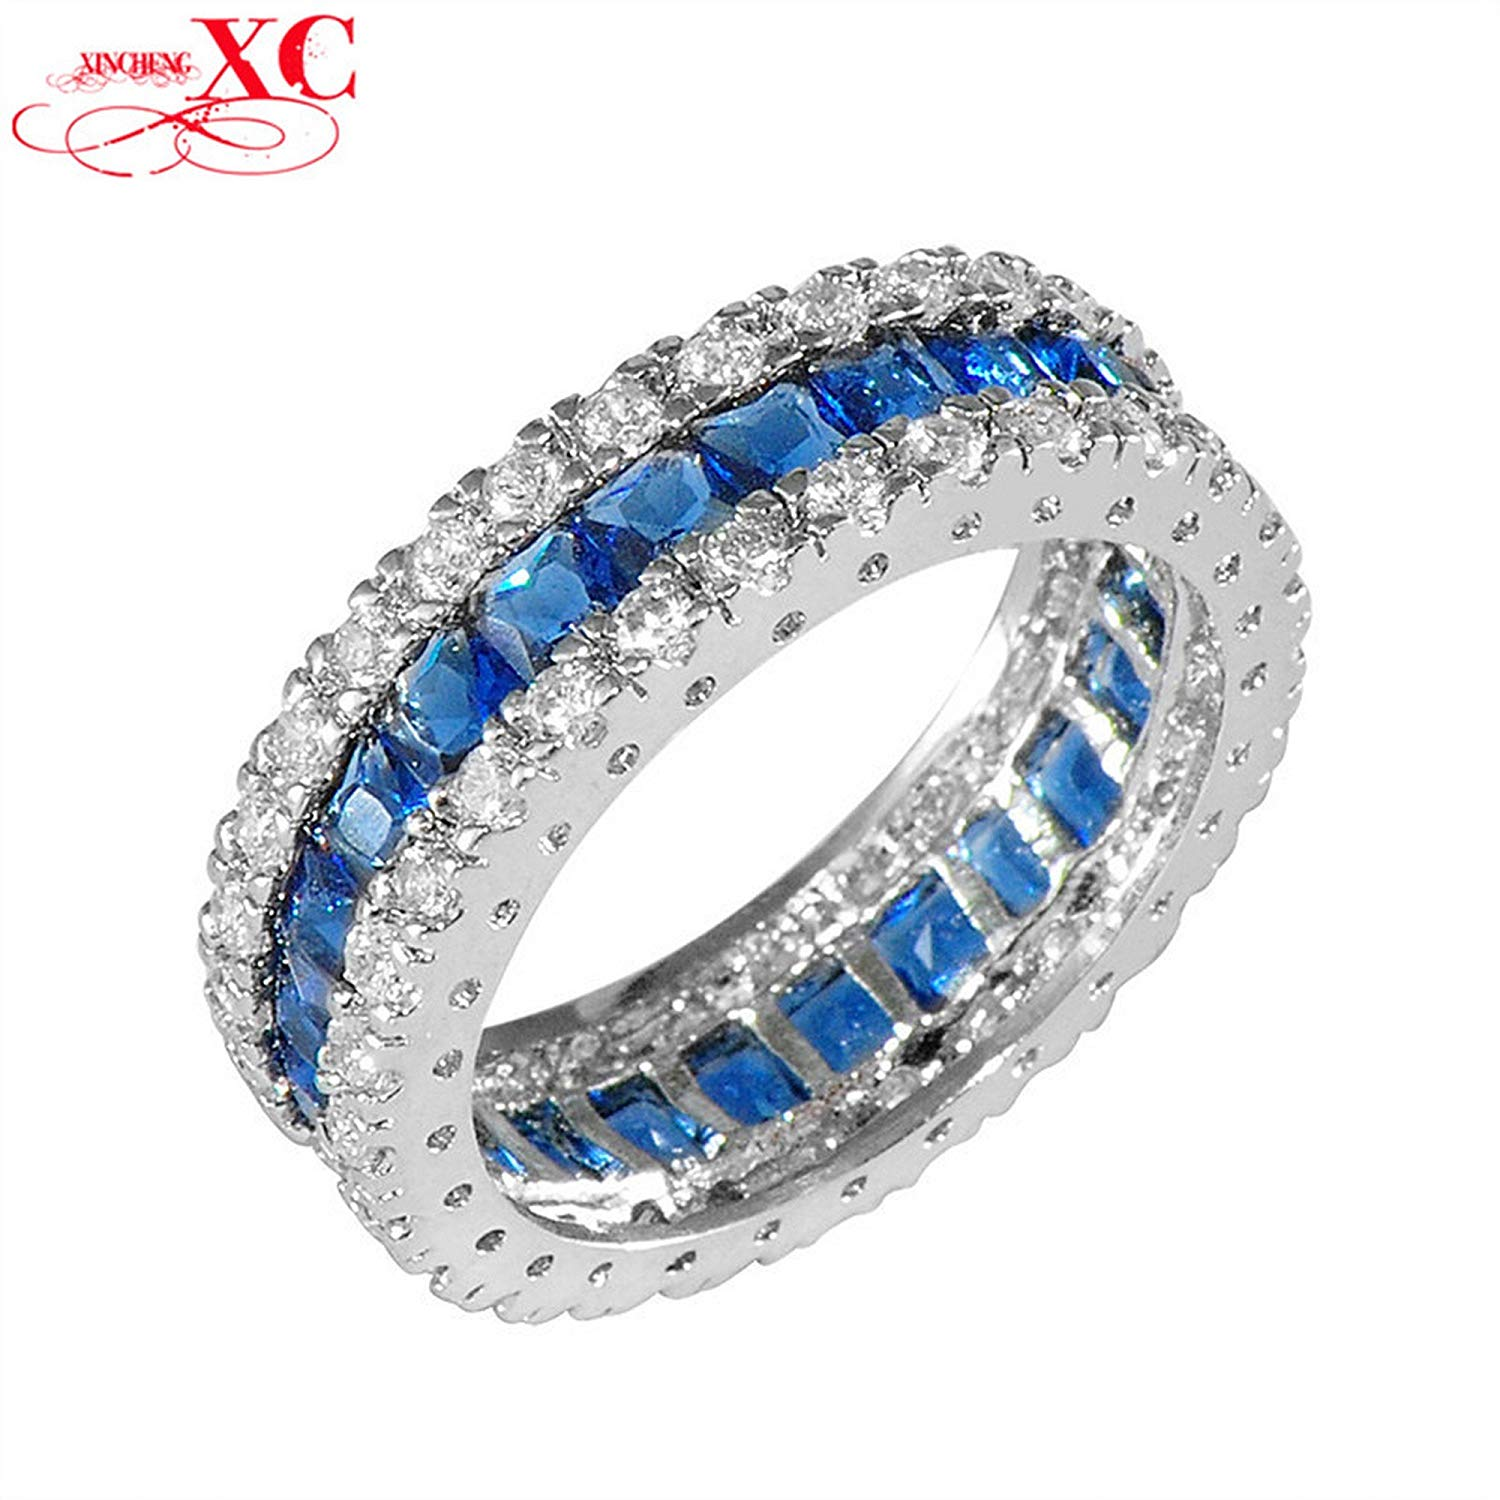 GDSHOP Fashion Blue Sapphire Vintage Jewelry Women/Men Wedding Ring Anel White CZ White Gold Filled Engagement Band Rings Sz6-10